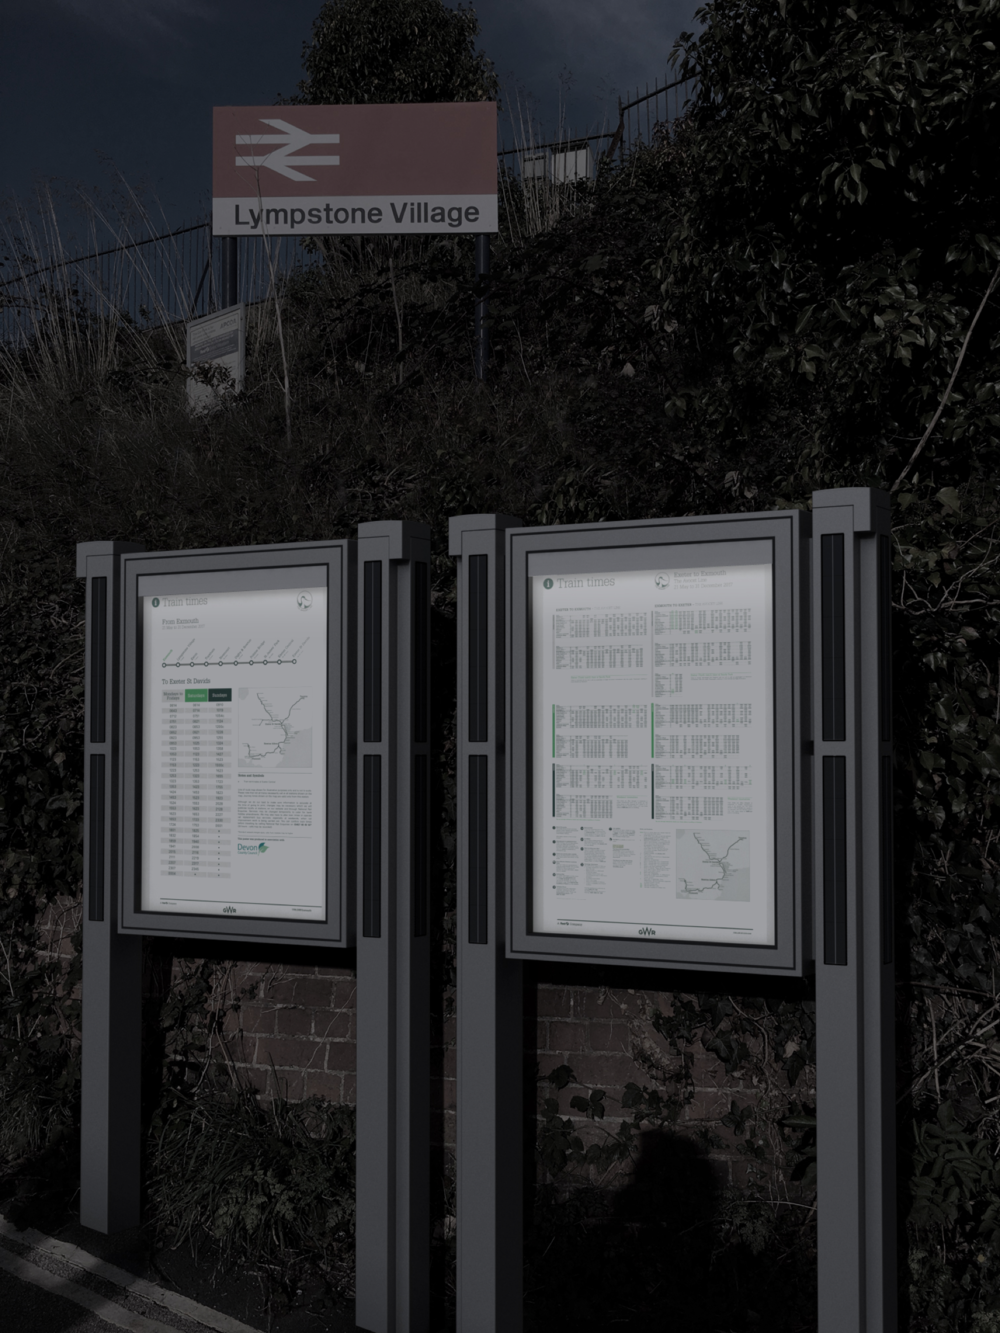 The Solarcase - Solar-powered display cases to illuminate information overnight